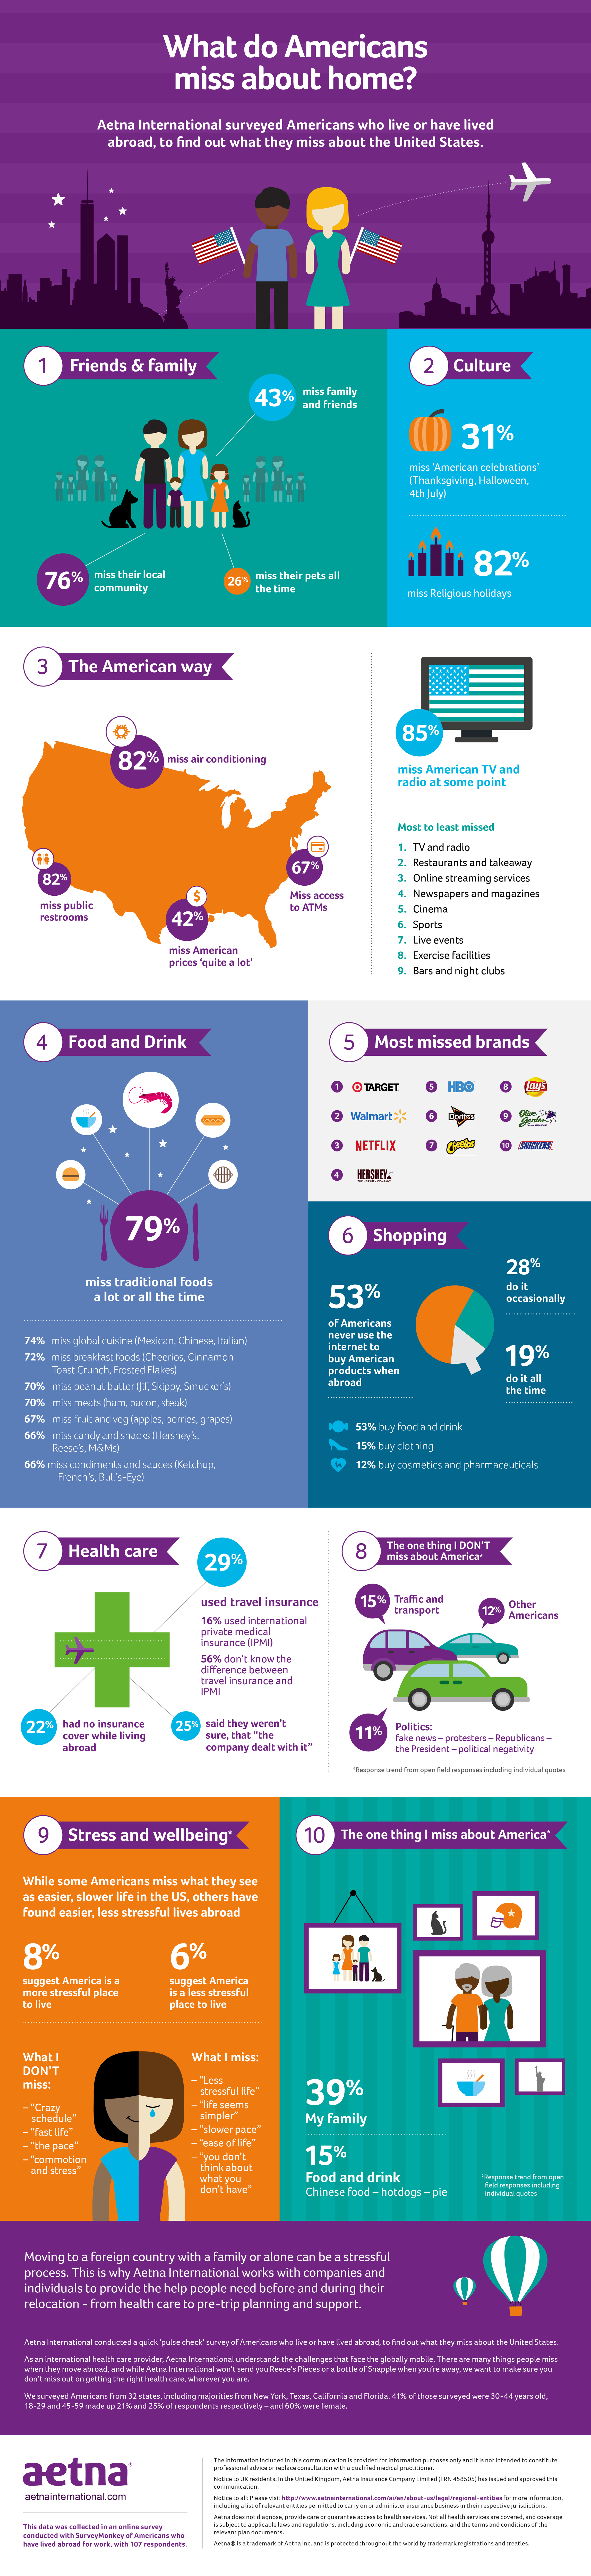 Aetna International Expat Infographic